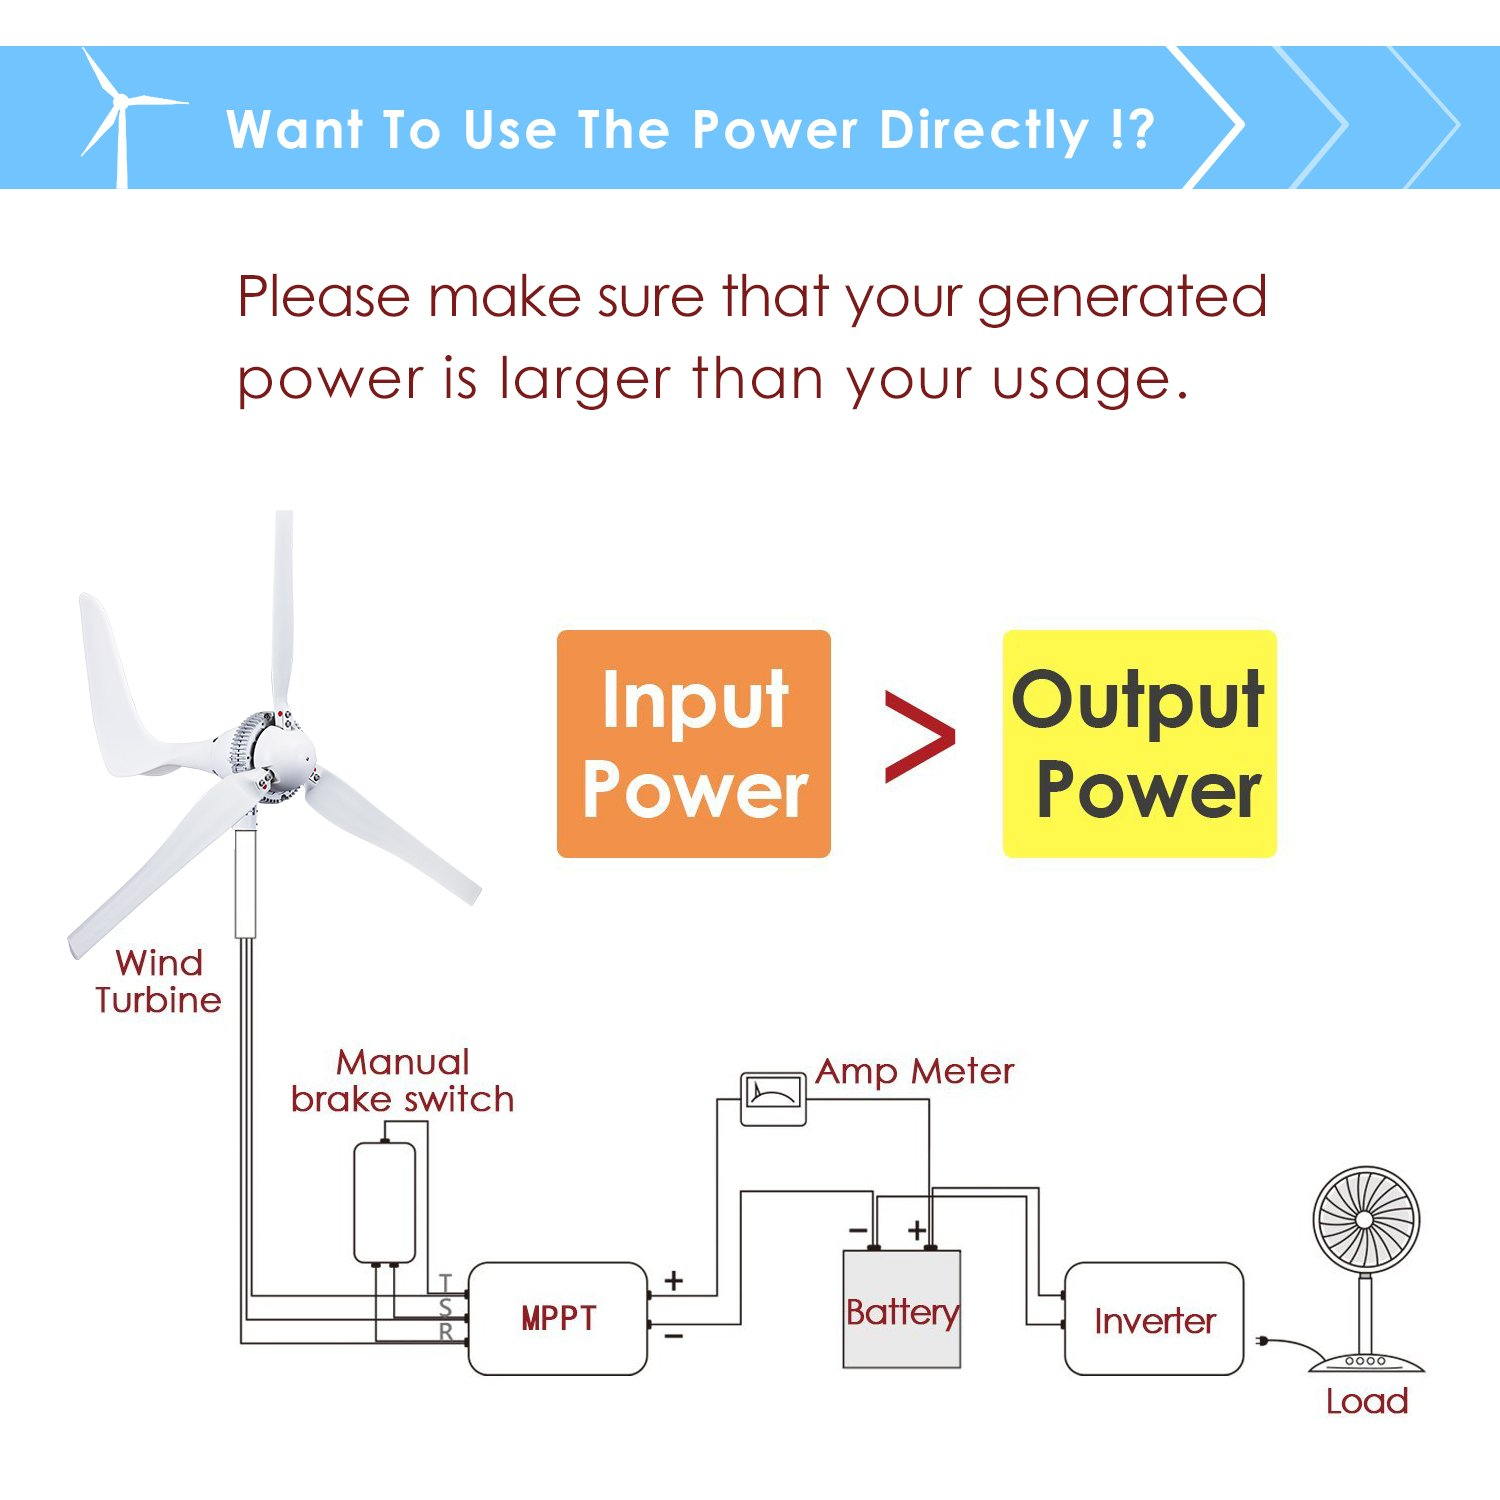 Windmill 1500w 24v 60a Wind Turbine Generator Kit Mppt Motor Together With Home Diagram In Charge Controller Included Automatic And Manual Breaking System Amp Meter